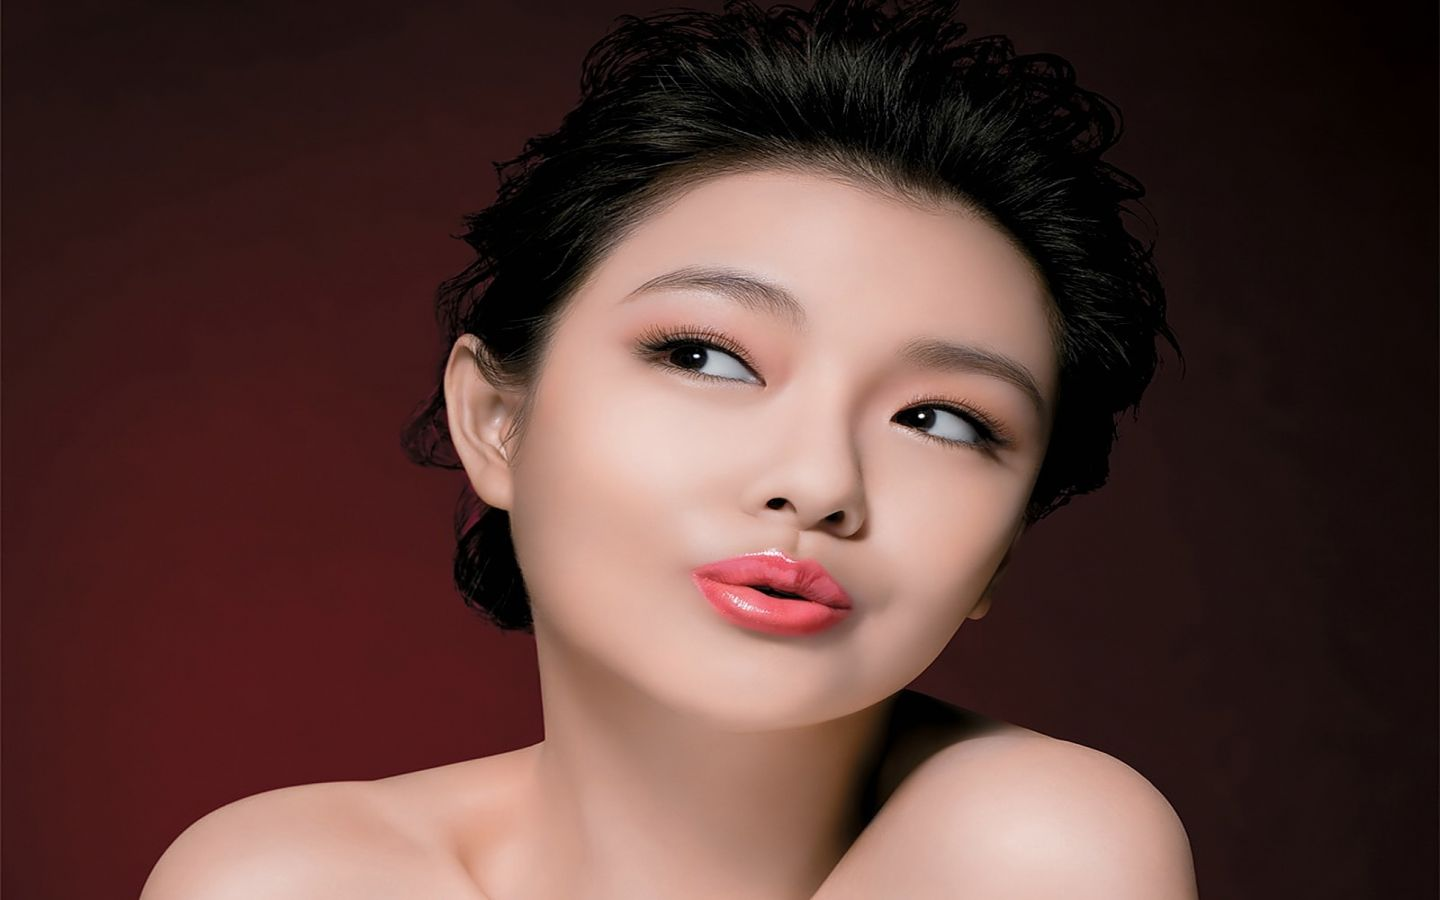 1440x900 - Barbie Hsu Wallpapers 19